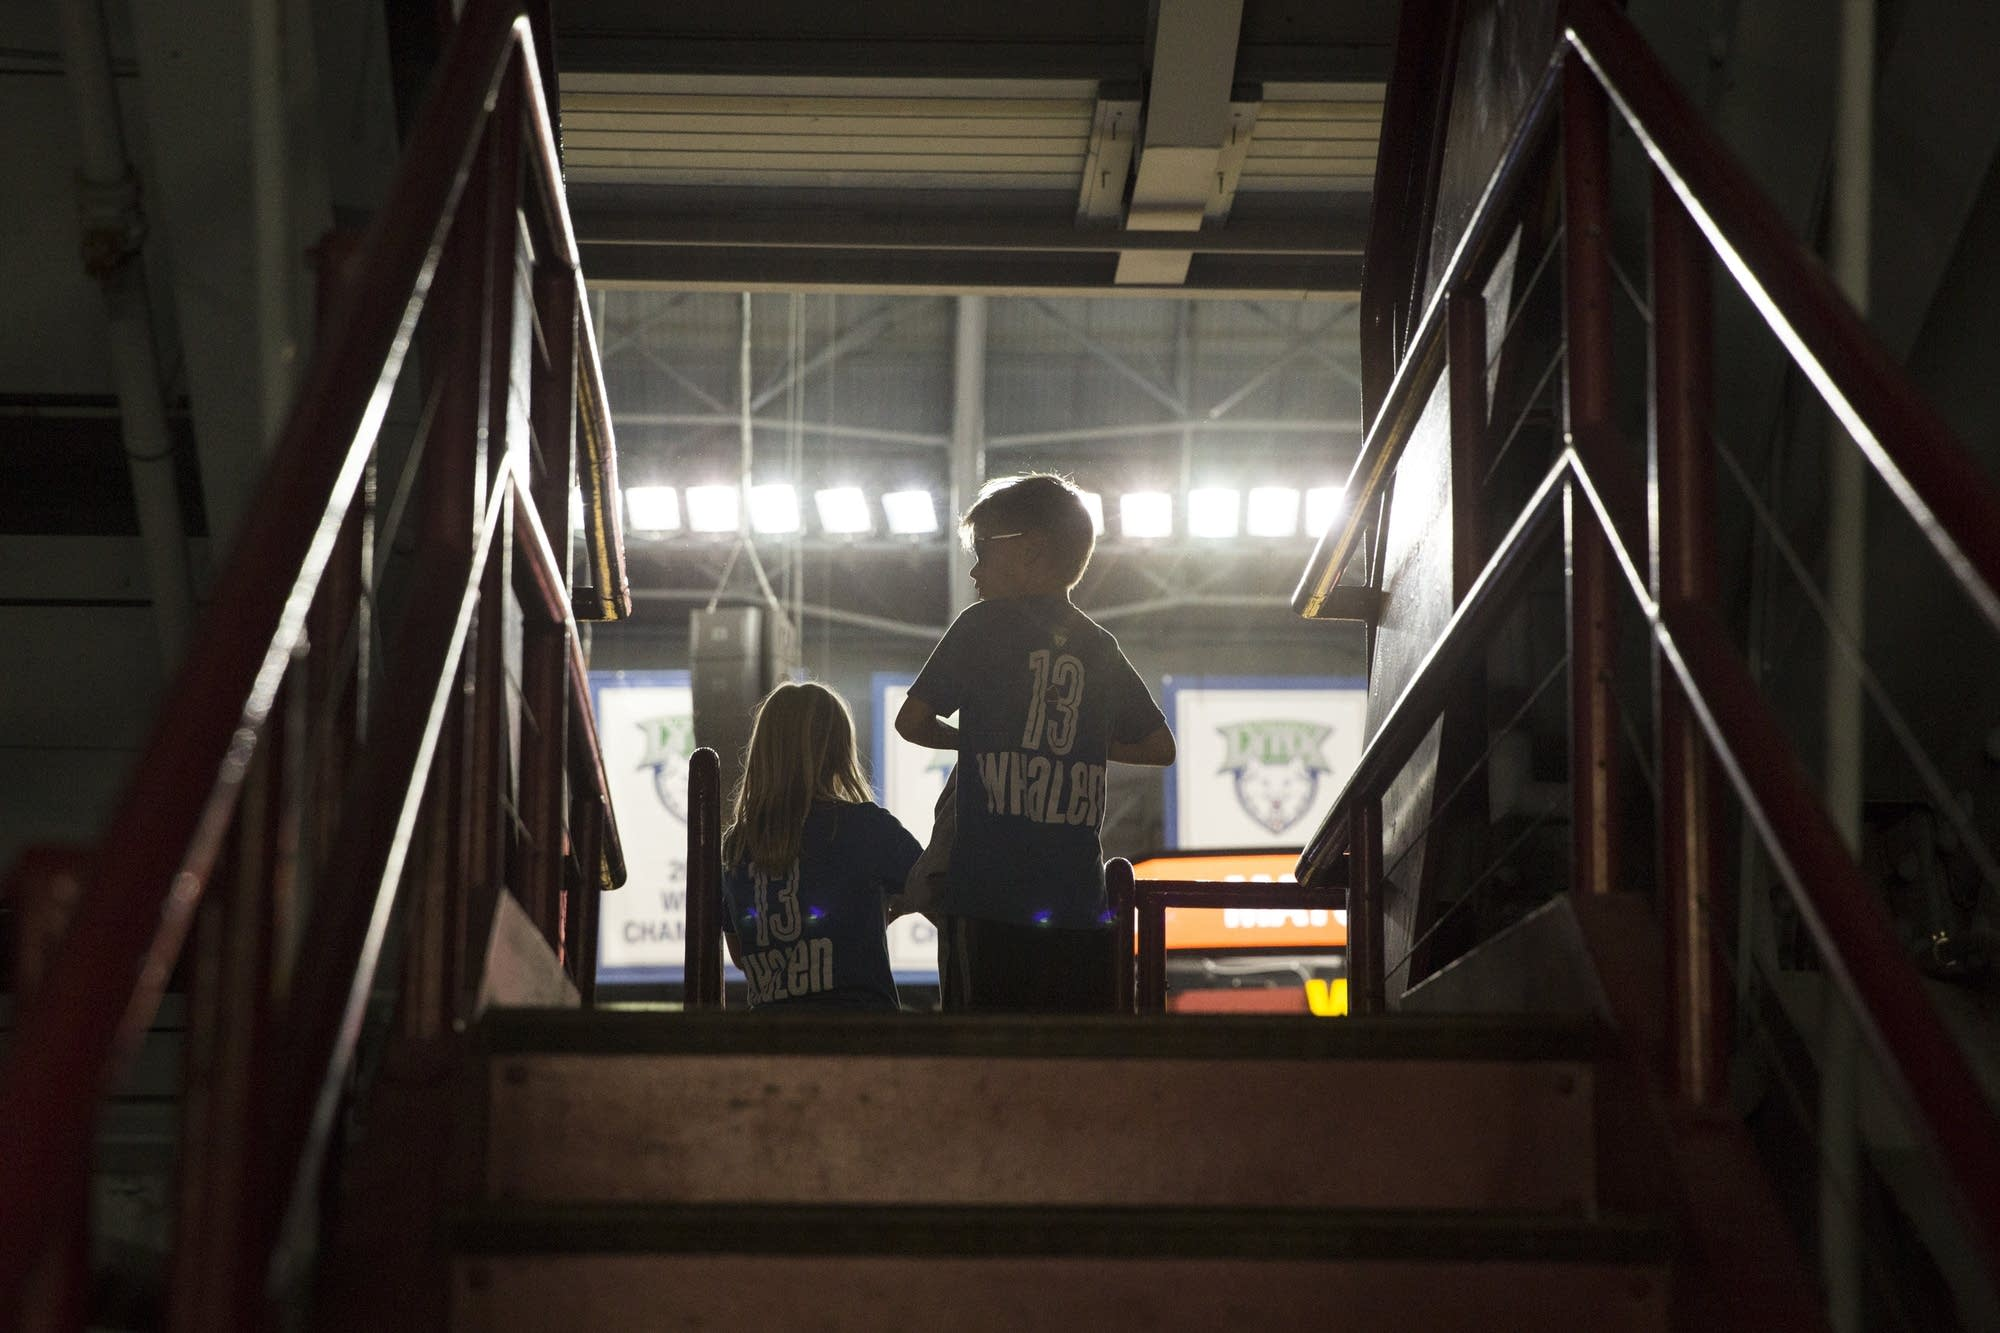 Two children watch the game from the upper deck.